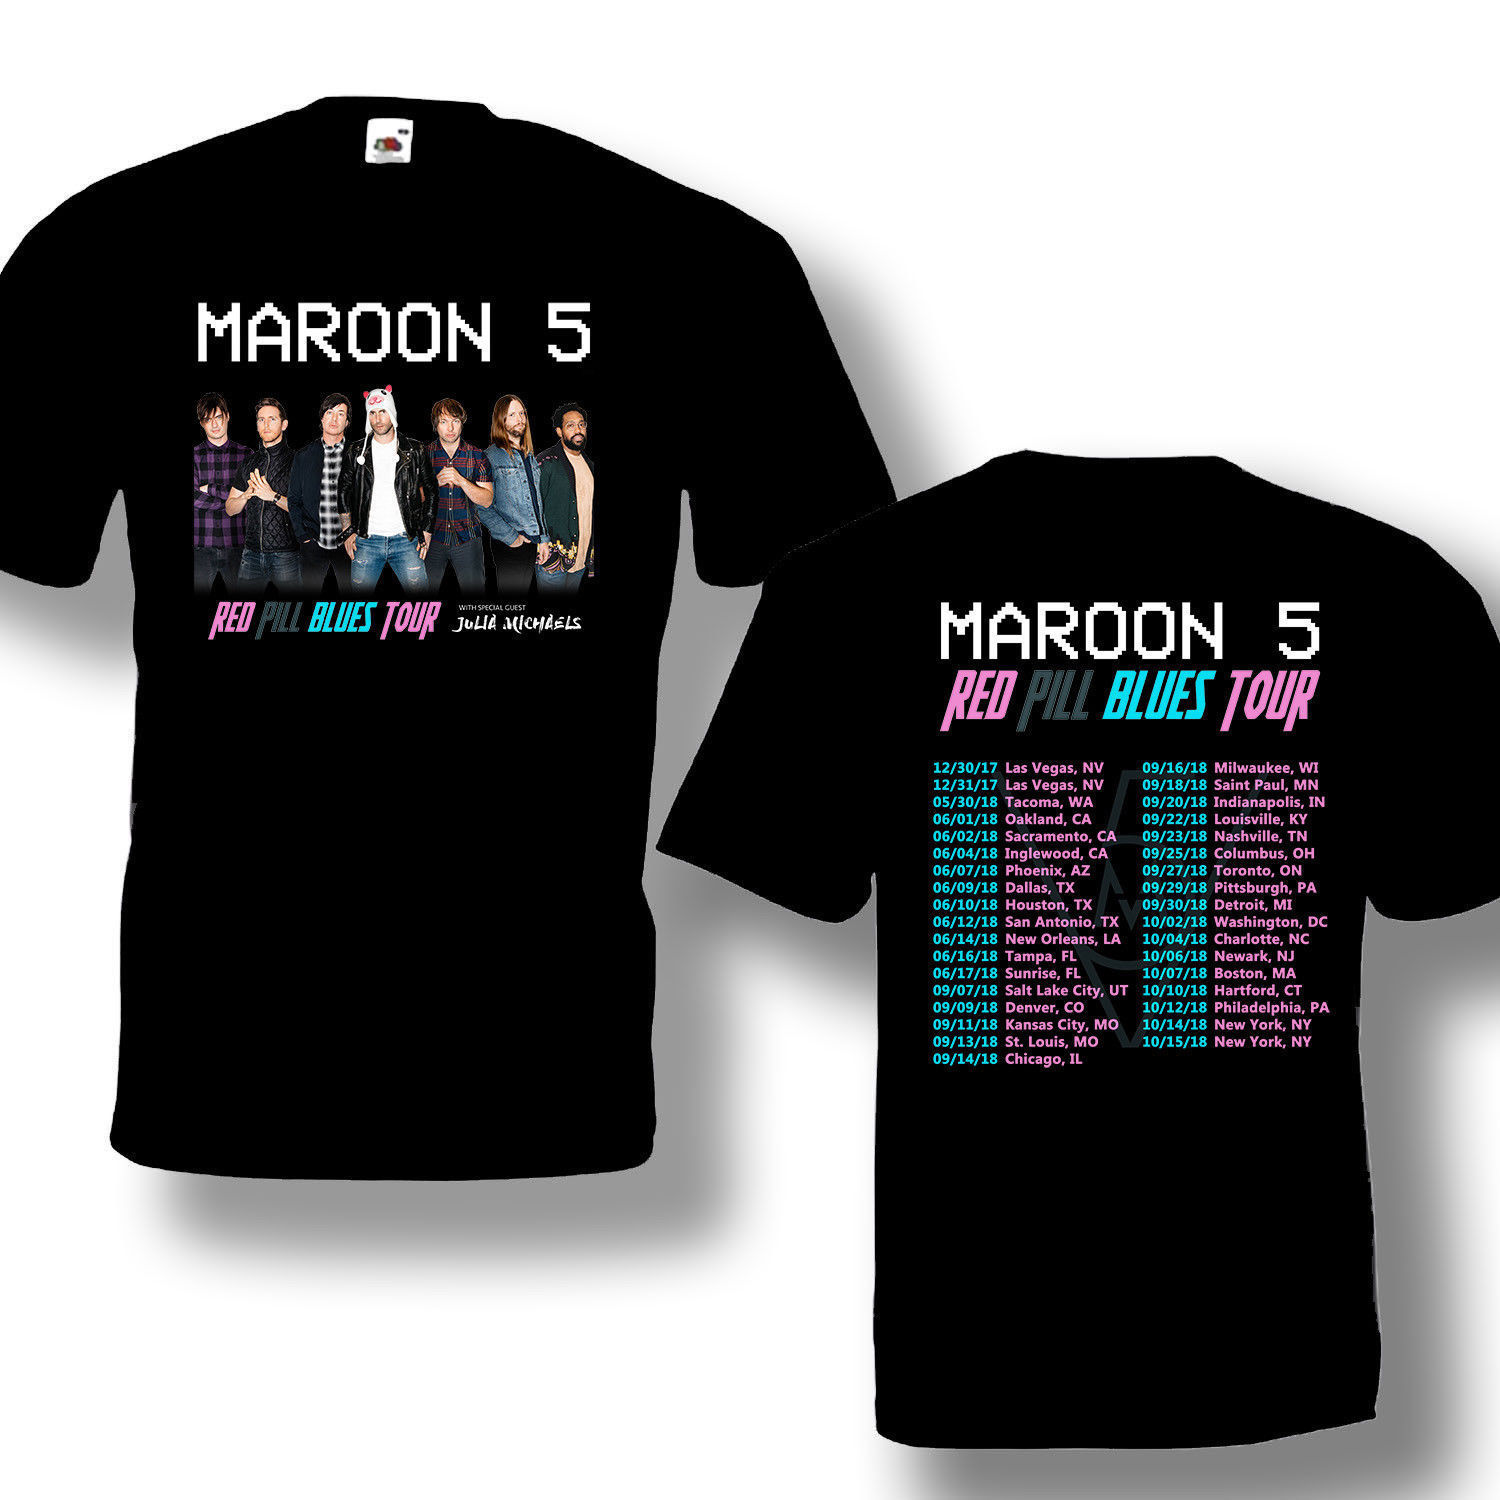 Maroon 5 Tour 2018 T shirt With Tour Date Black T-Shirt Tees Size S-3XL Short Sleeve Discount 100 % Cotton T Shirts